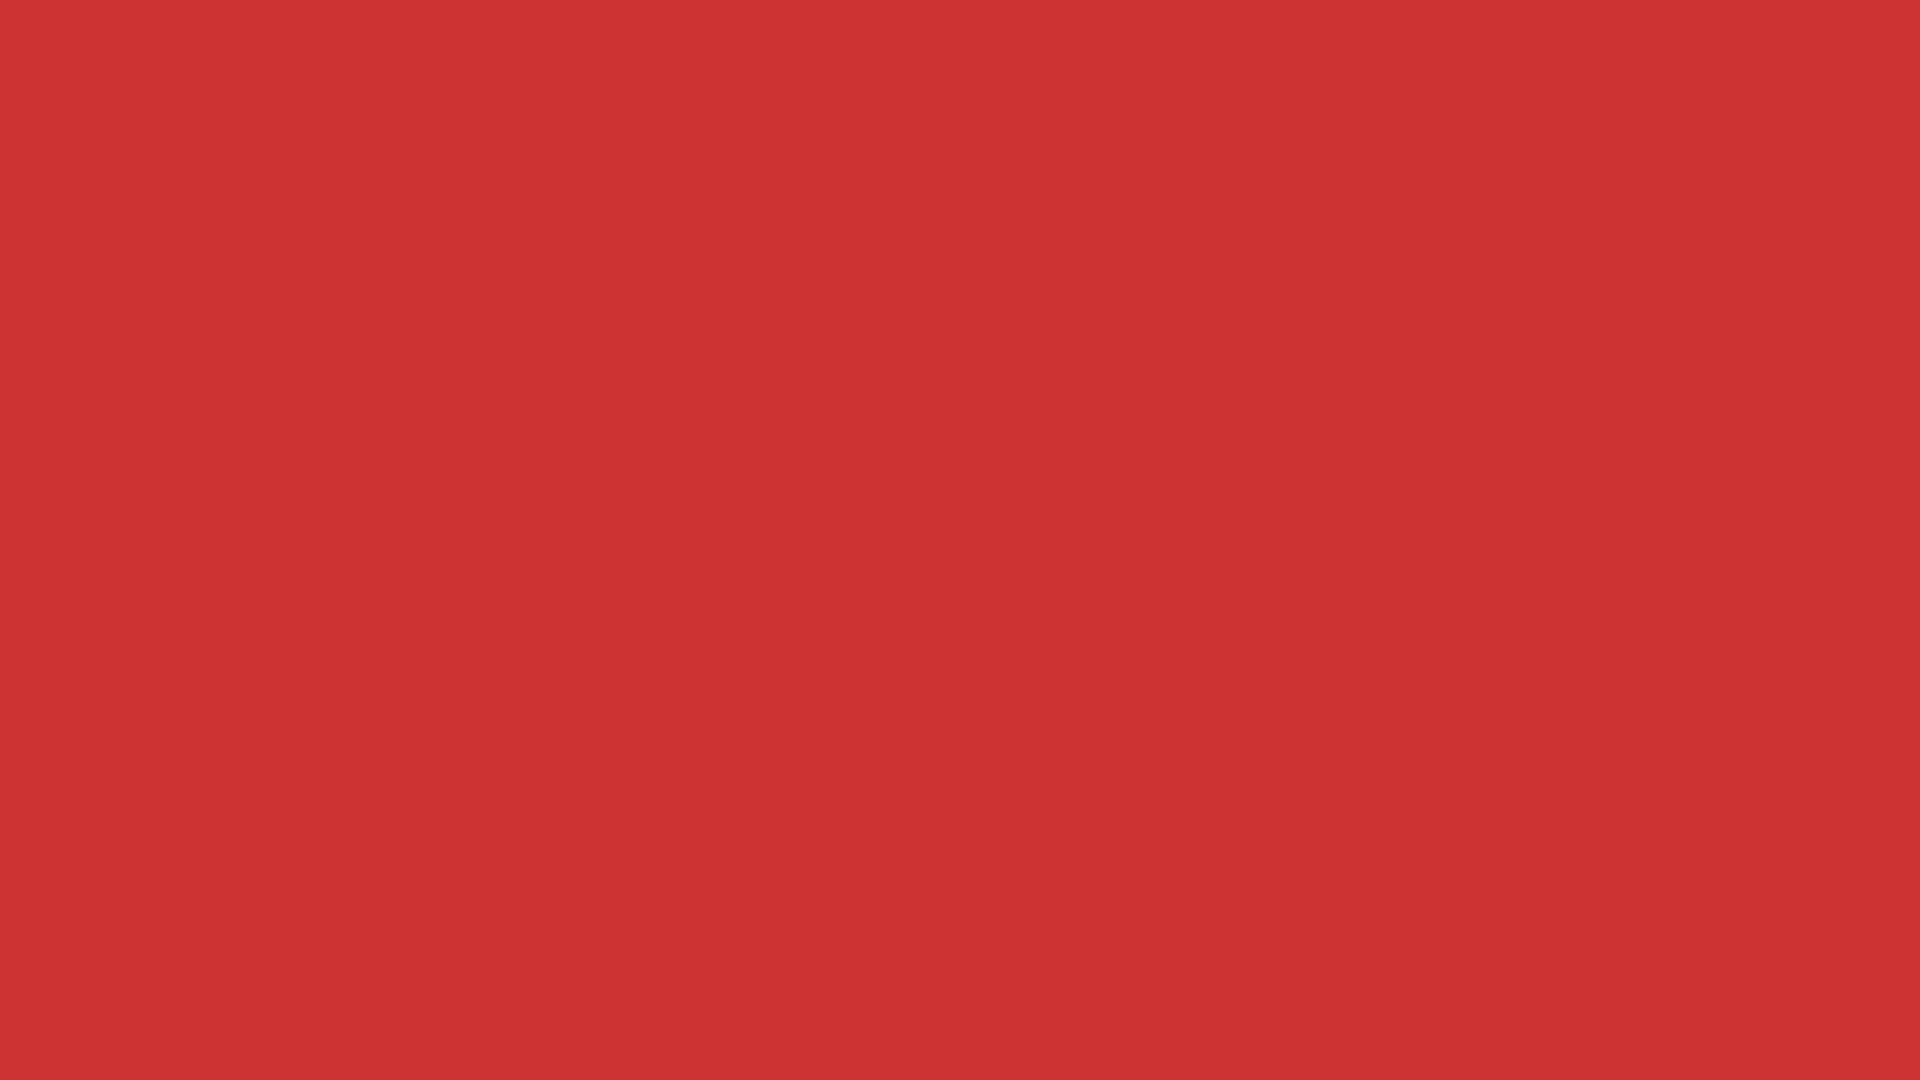 1920x1080 Persian Red Solid Color Background